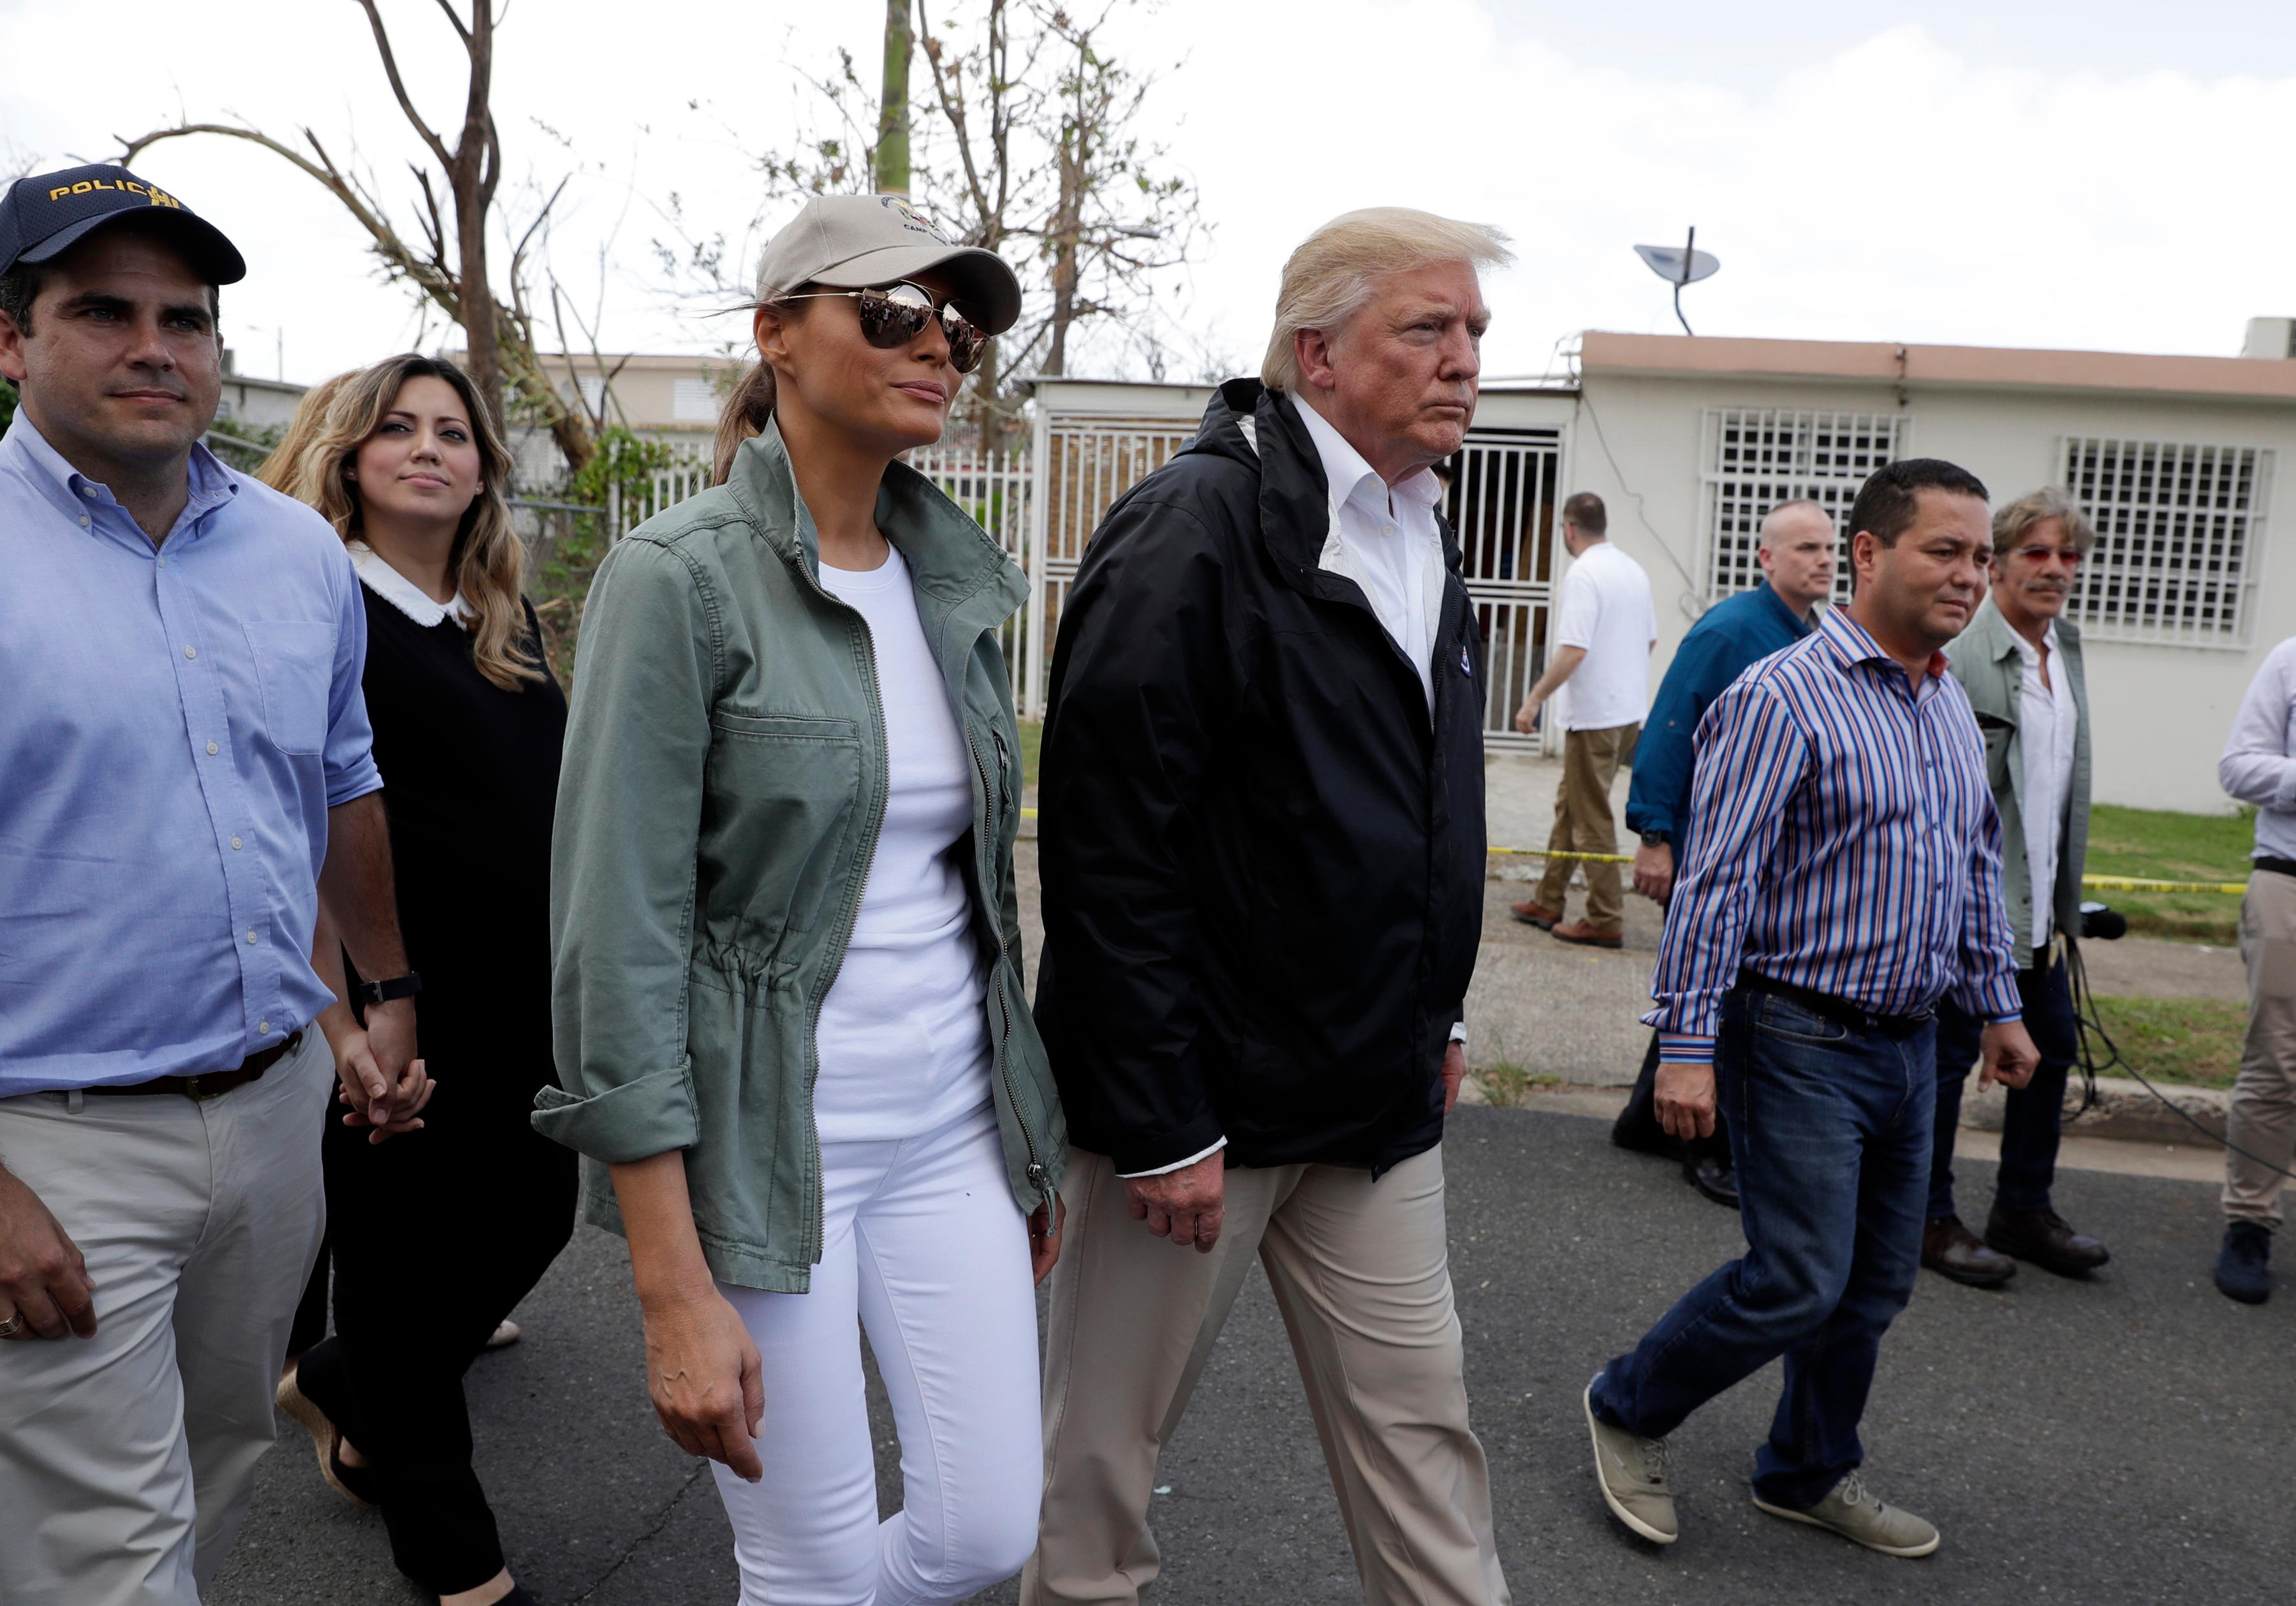 President Donald Trump and first lady Melania Trump take a walking tour with Puerto Rico Governor Ricardo Rosselló, left, and his wife Beatriz Areizaga, to survey hurricane damage and recovery efforts in a neighborhood in Guaynabo, Puerto Rico, Tuesday, Oct. 3, 2017. (AP Photo/Evan Vucci)